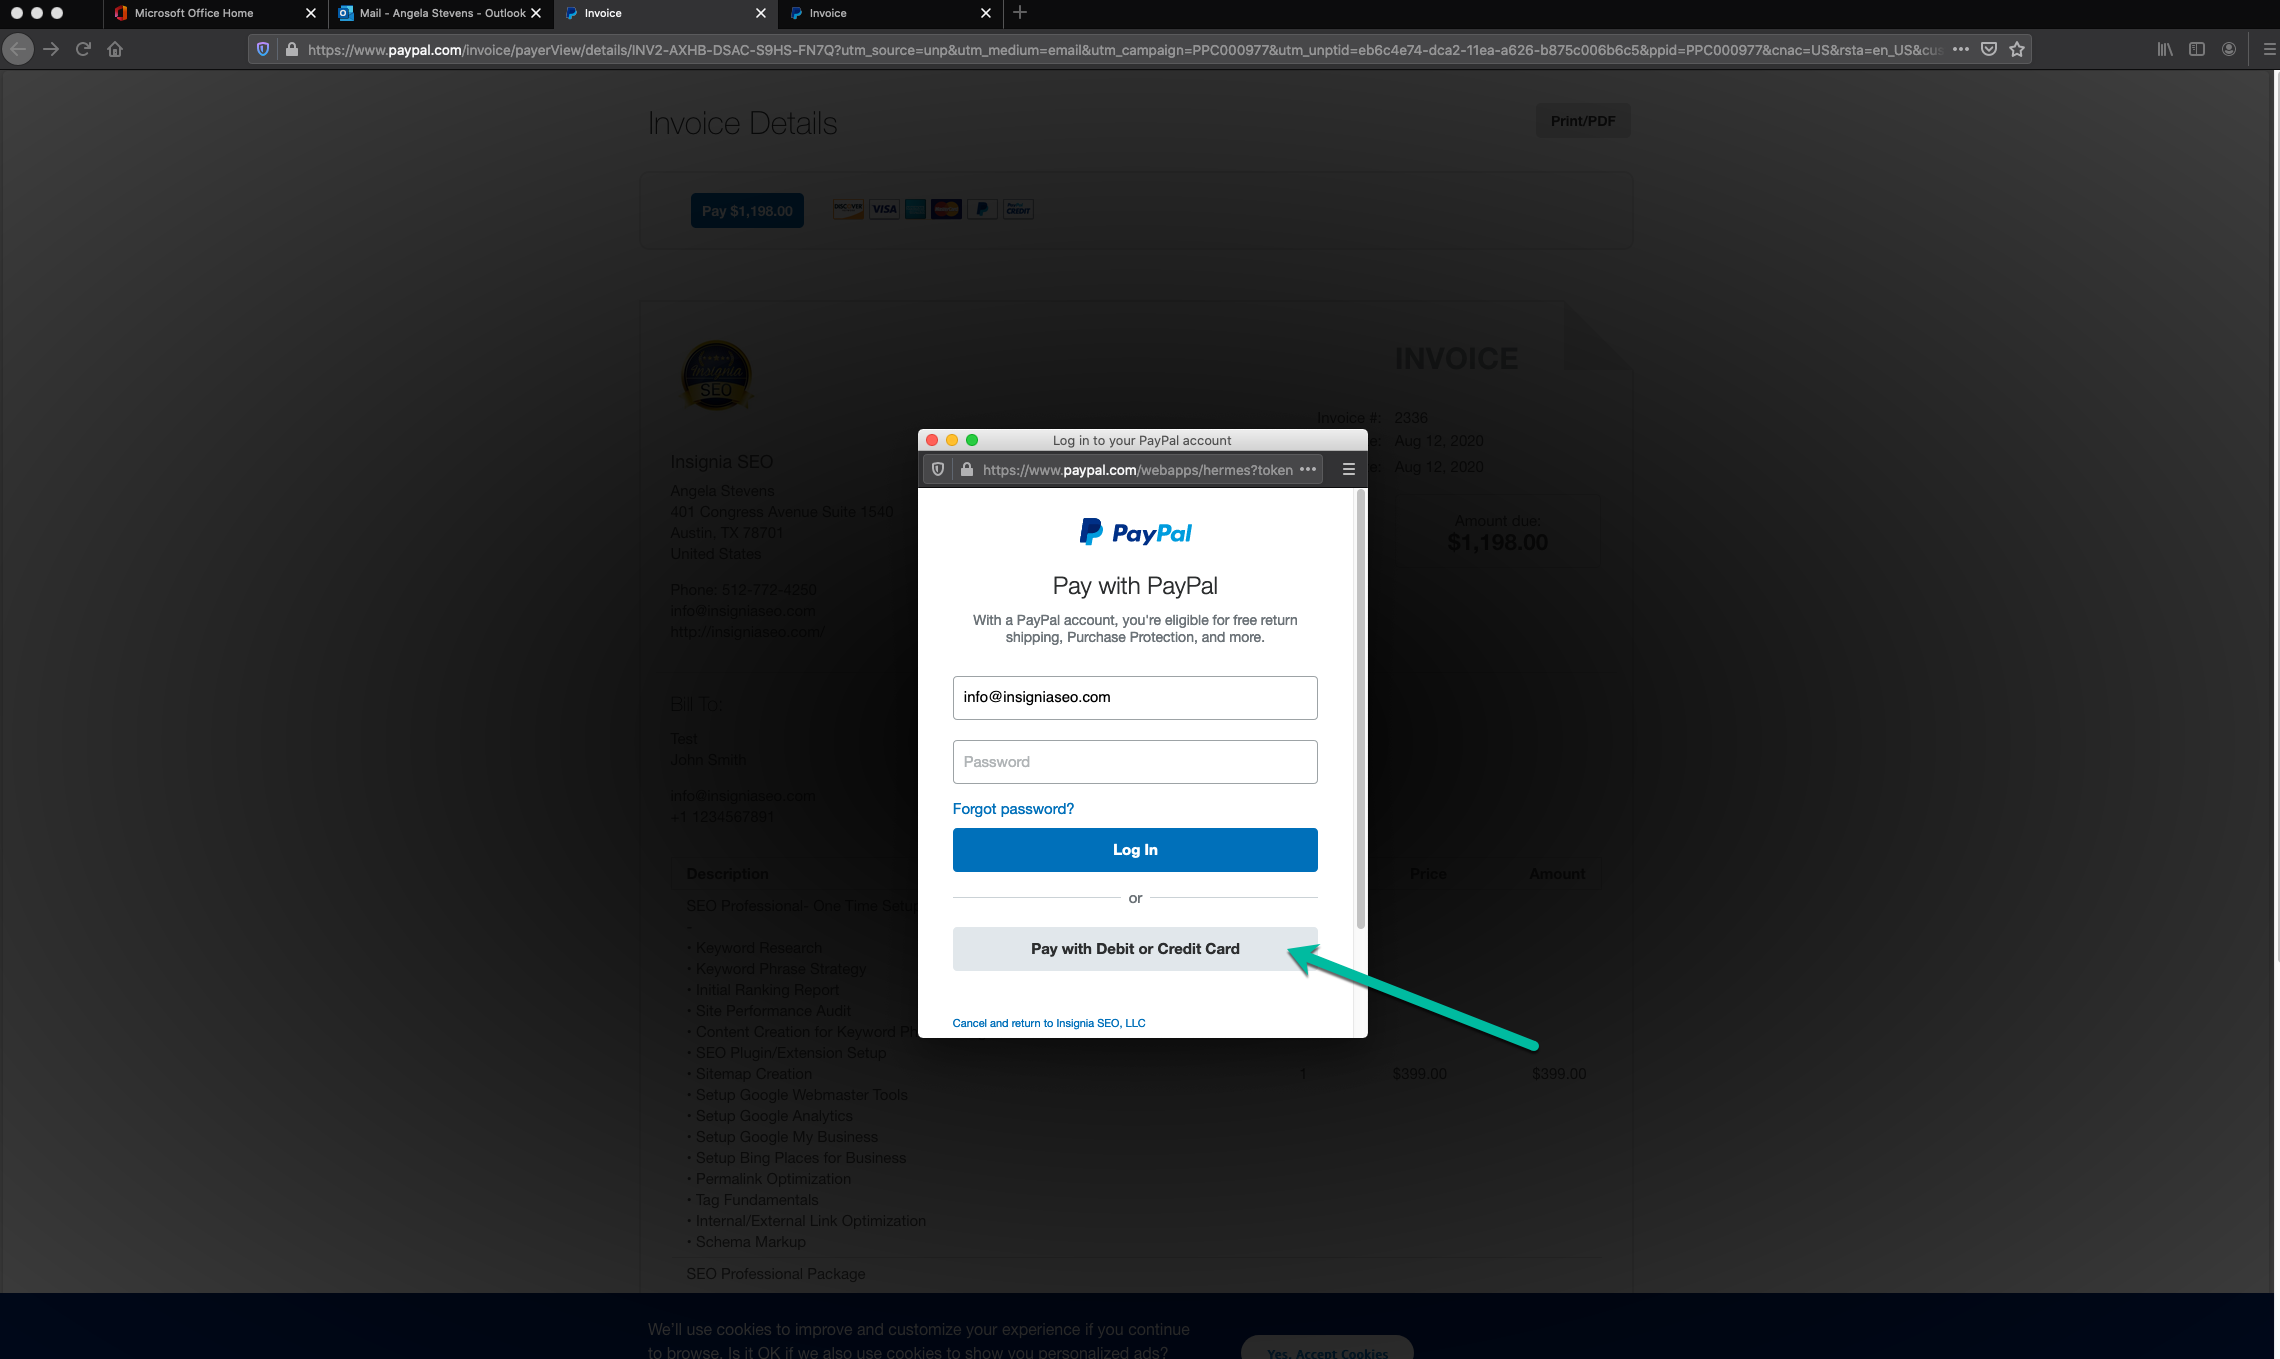 PayPal Invoice 4 - How to Pay a PayPal Invoice